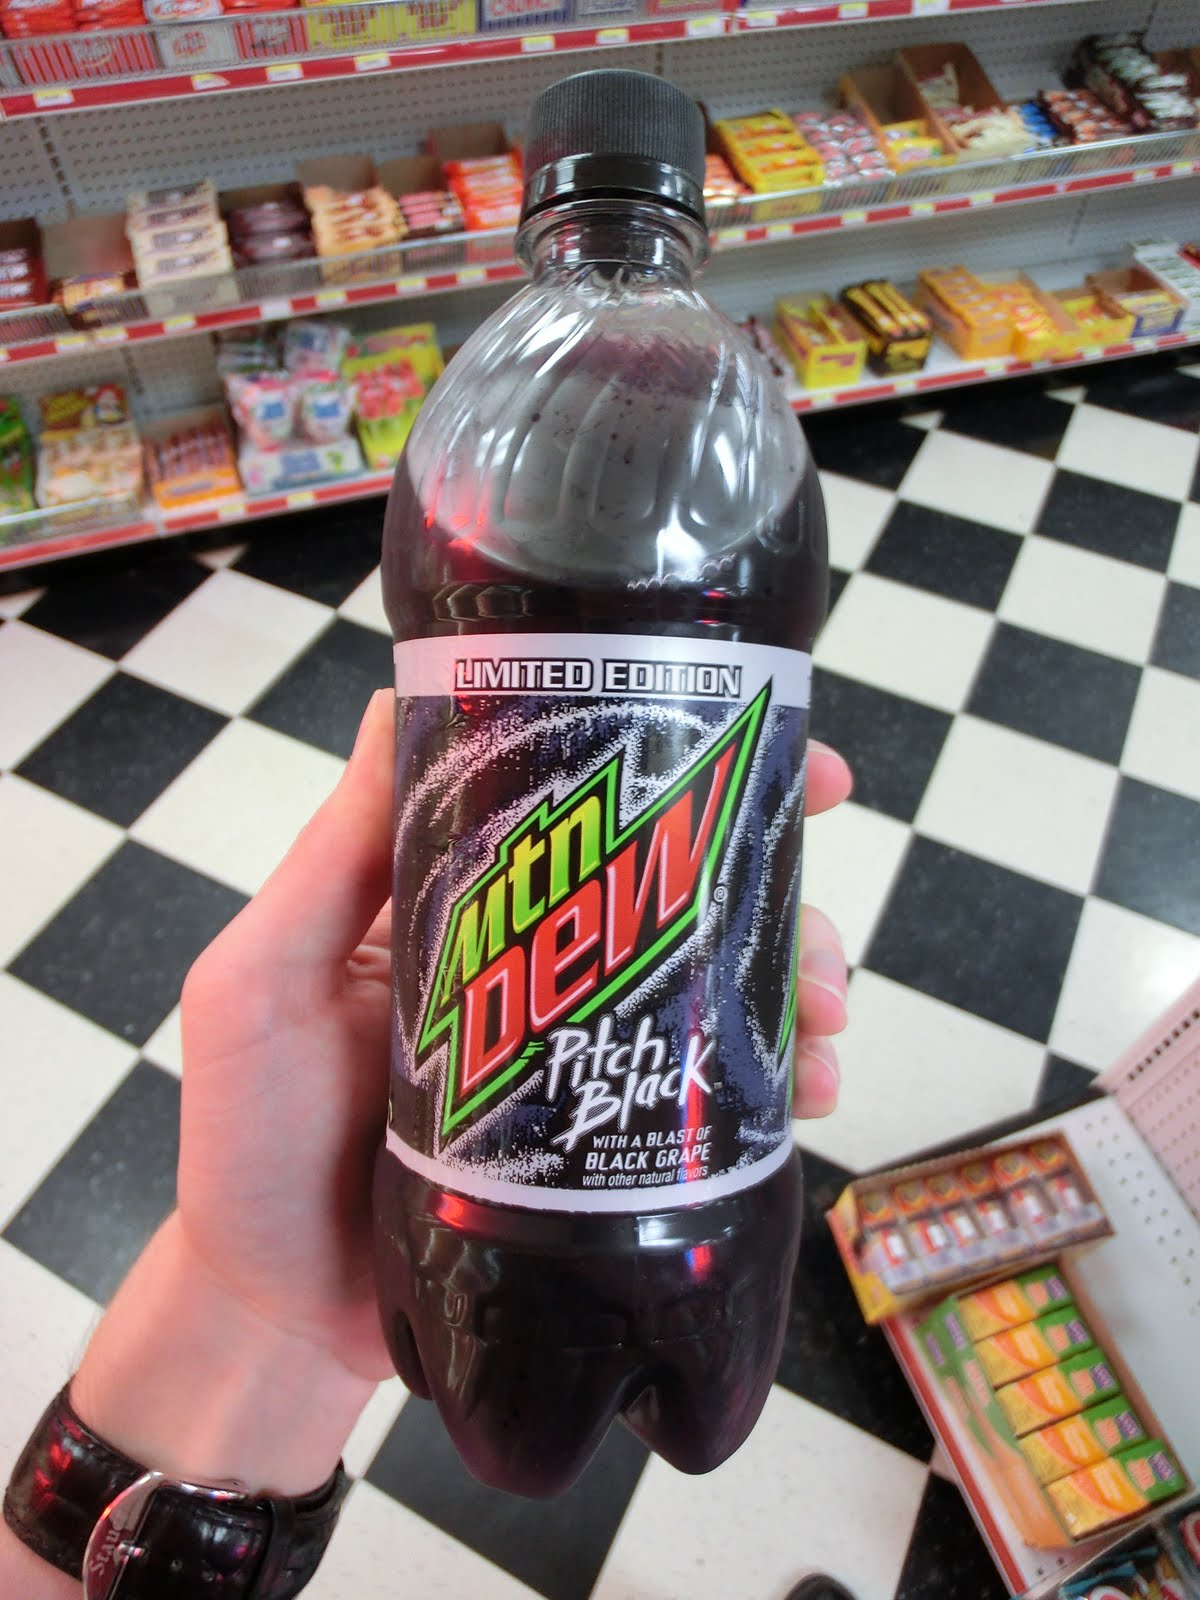 Drinkable Review: Mountain Dew: Pitch Black